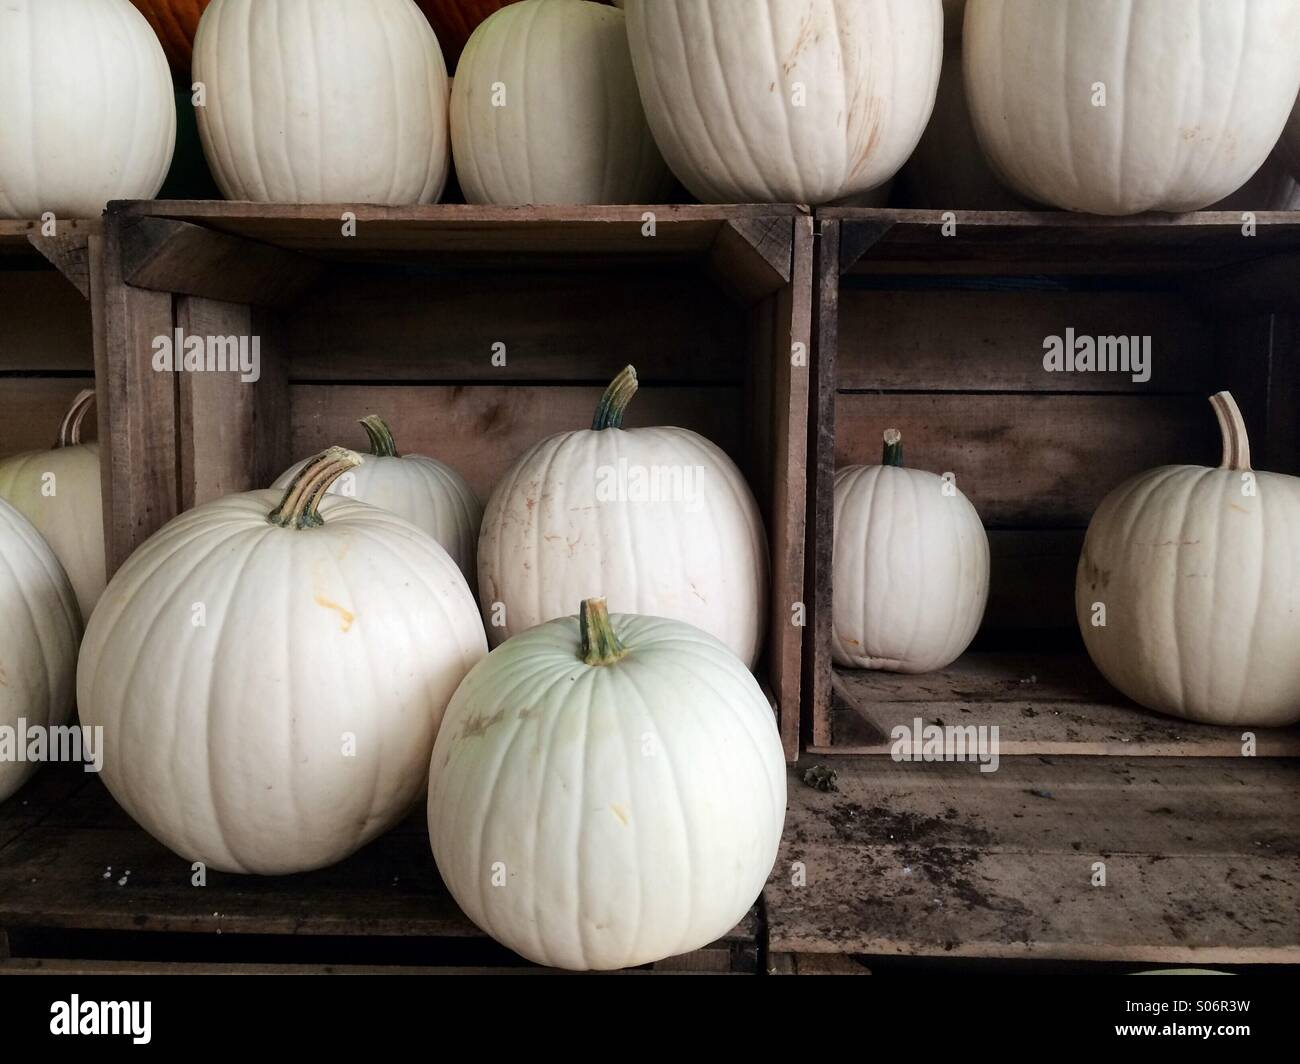 White pumpkins in wooden crates - Stock Image